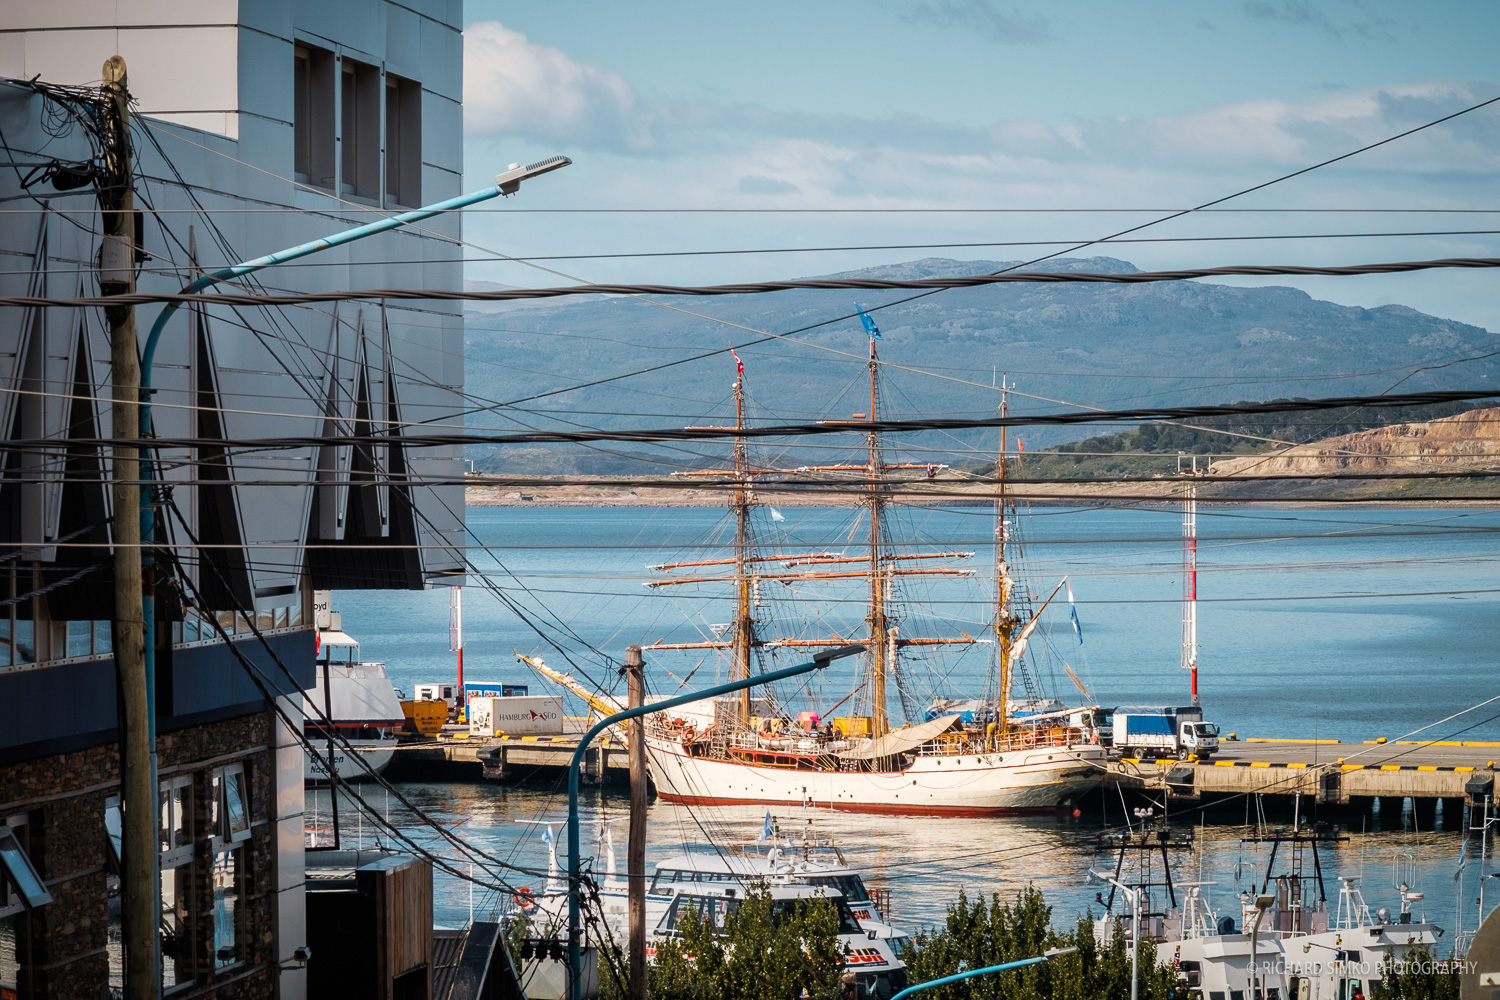 Europa at the port. Shots from far away streets of Ushuaia.